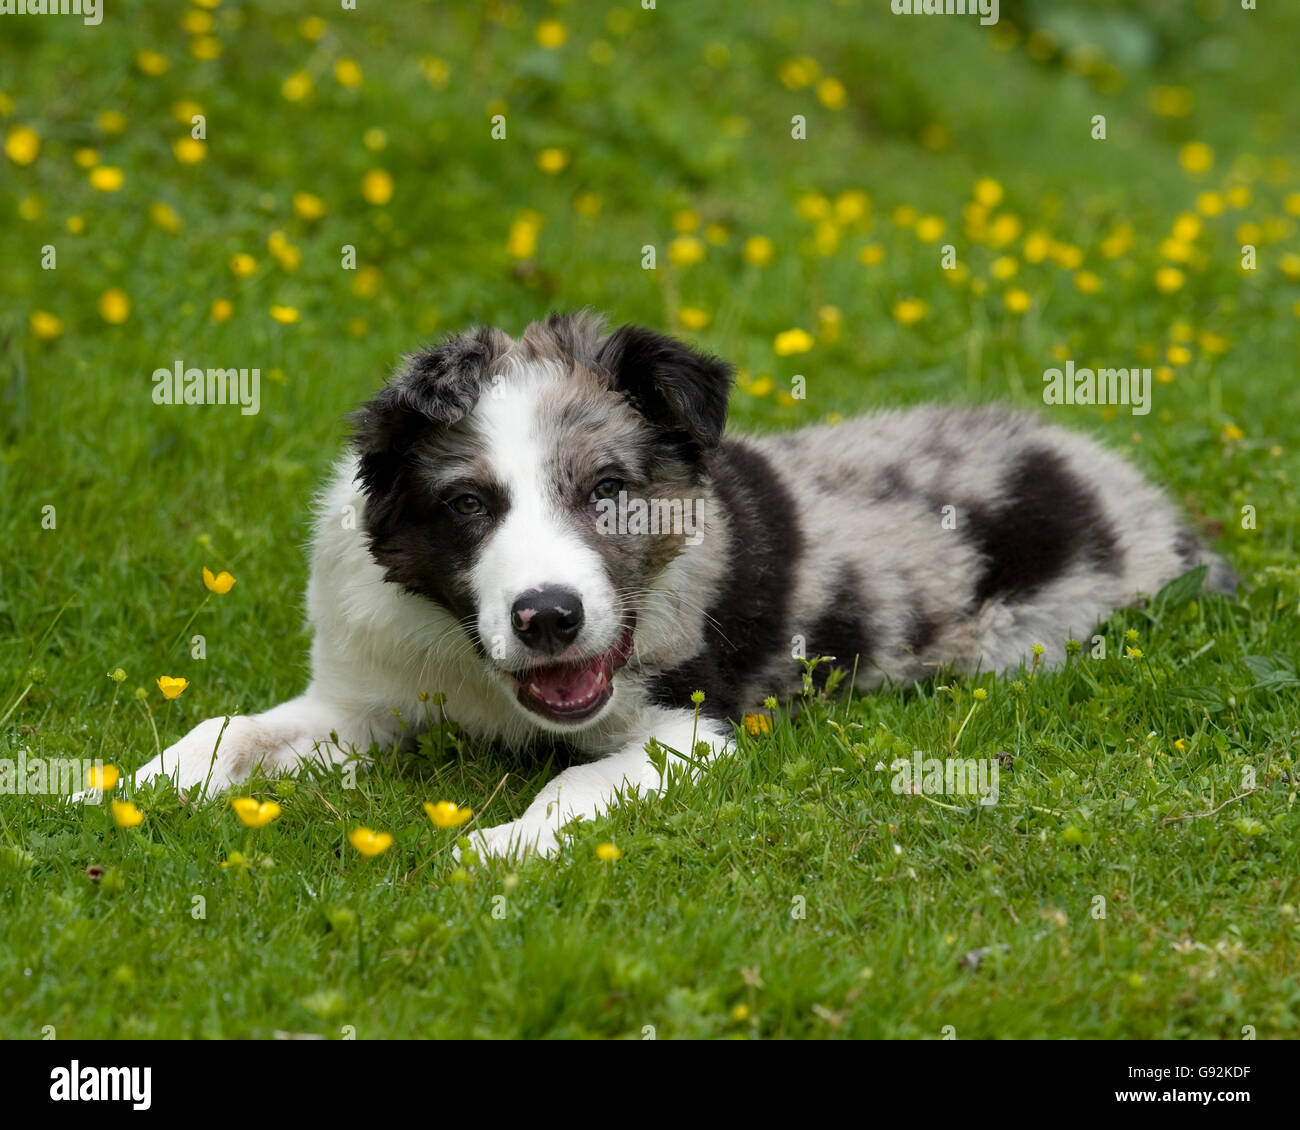 blue merle border collie puppy - Stock Image